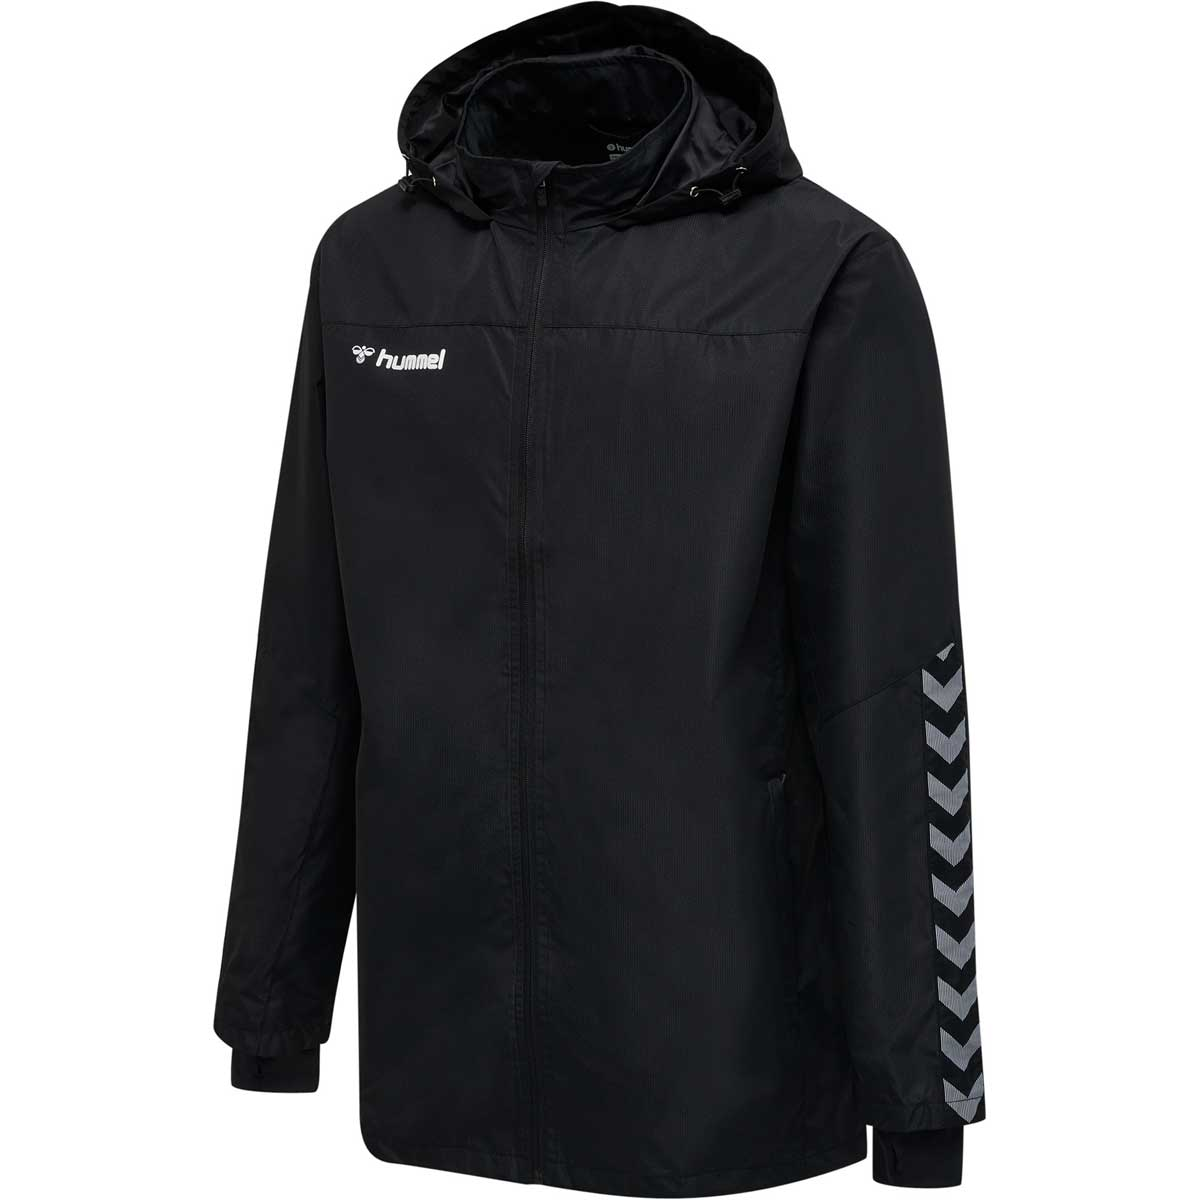 Hmlauthentic All-weather-jacket